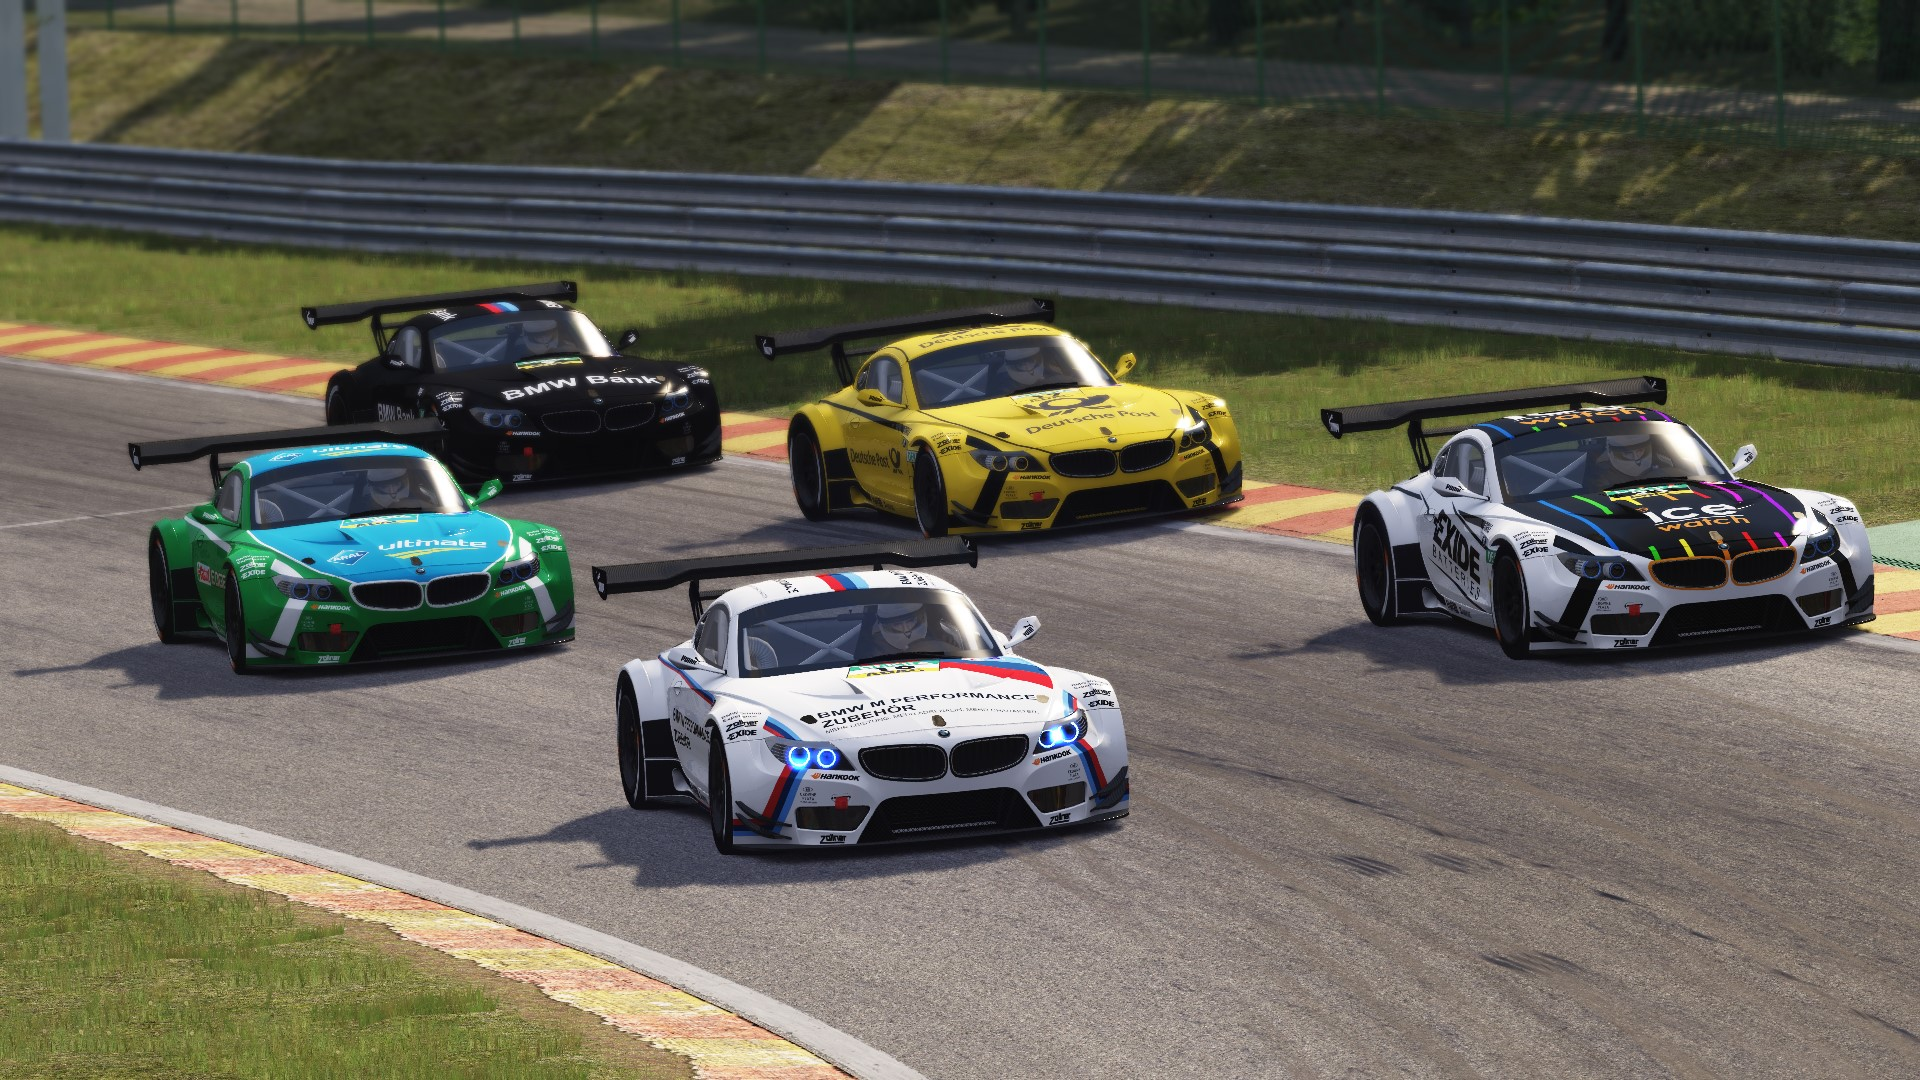 Screenshot_bmw_z4_gt3_spa_17-2-2015-21-49-17.jpg